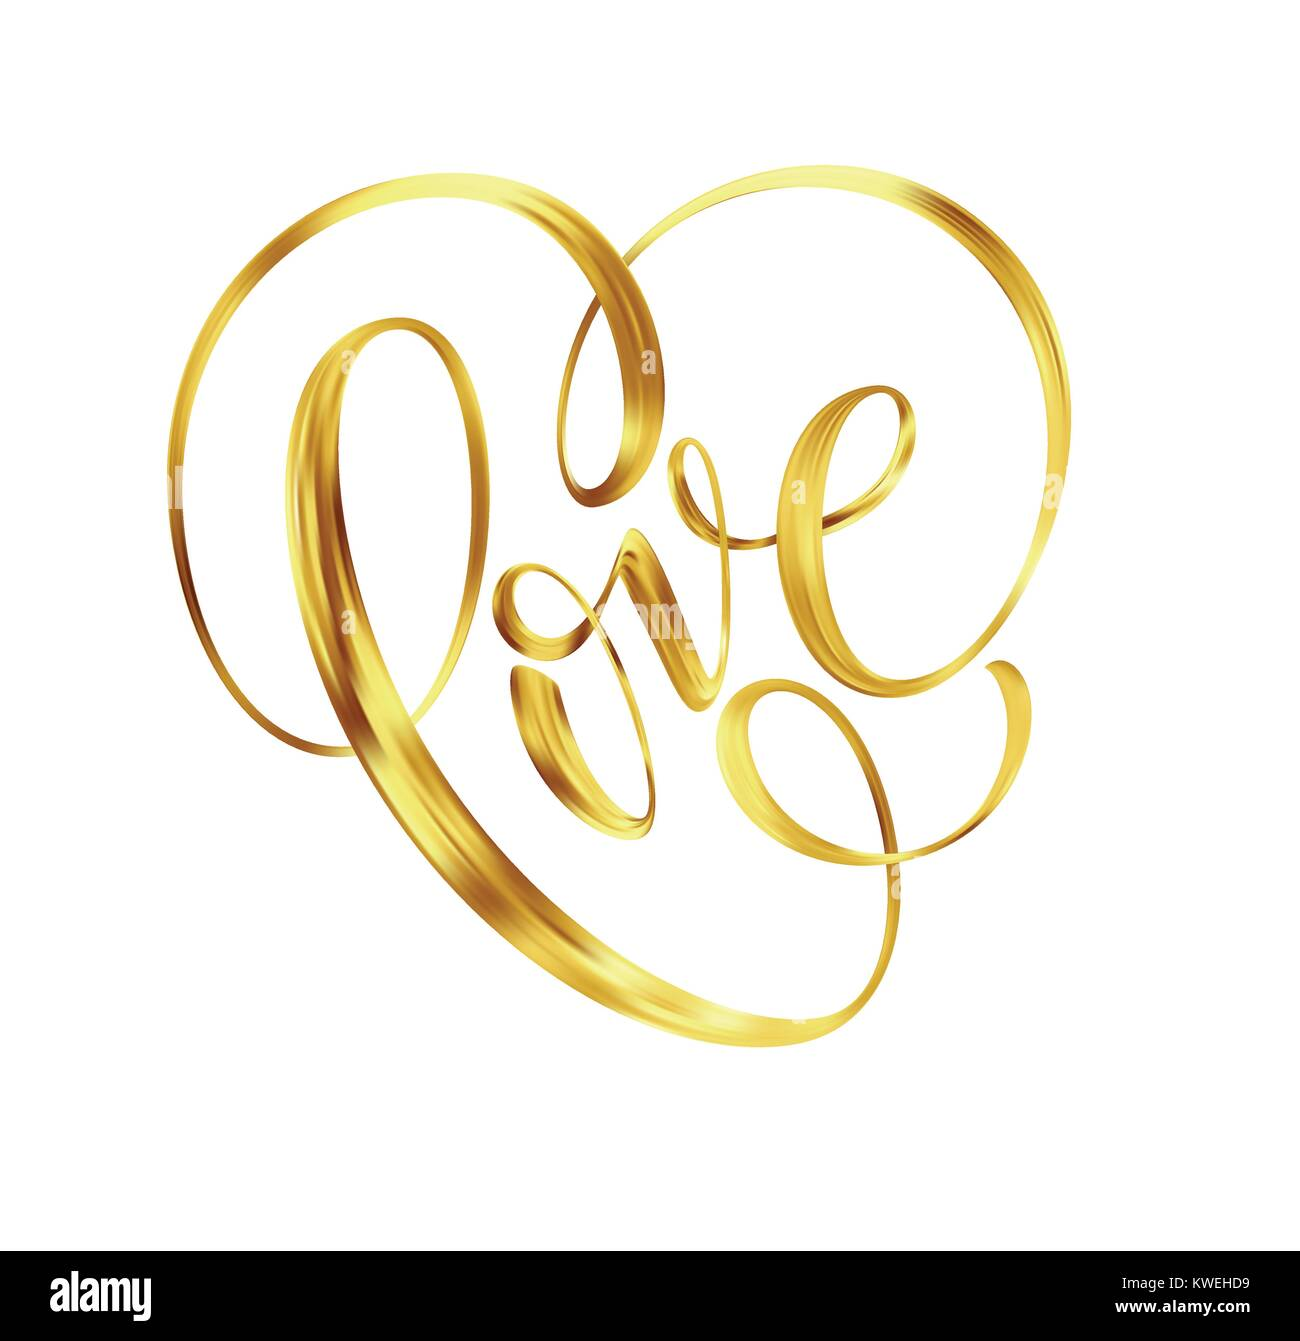 Love gold lettering text on background, hand painted letter, golden valentines day handwritten calligraphy for greeting - Stock Image